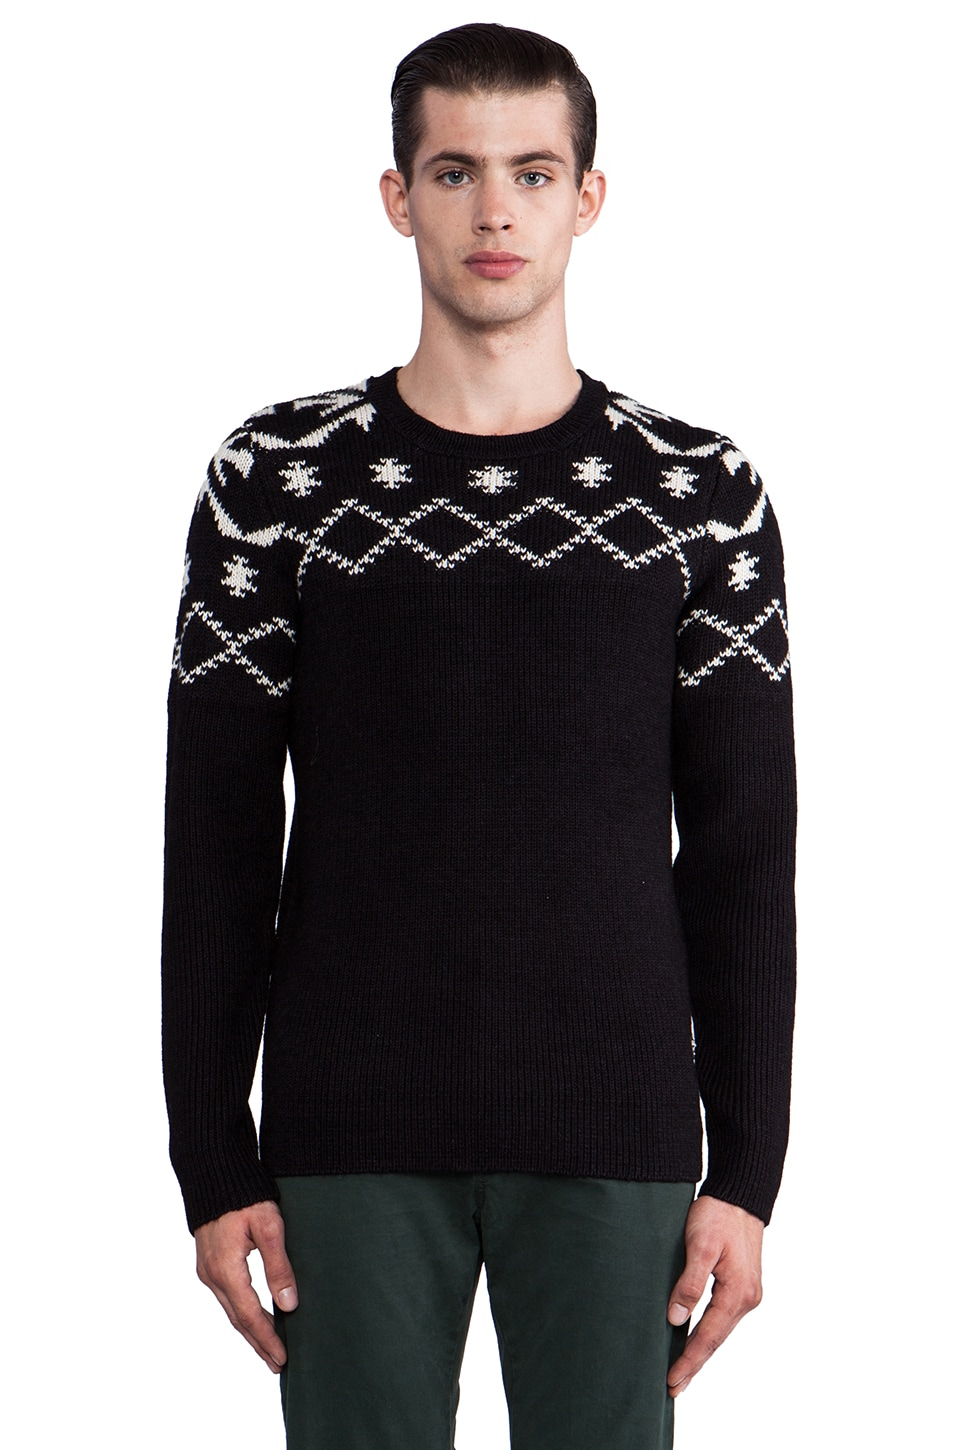 Scotch & Soda Intarsia Sweater in Black